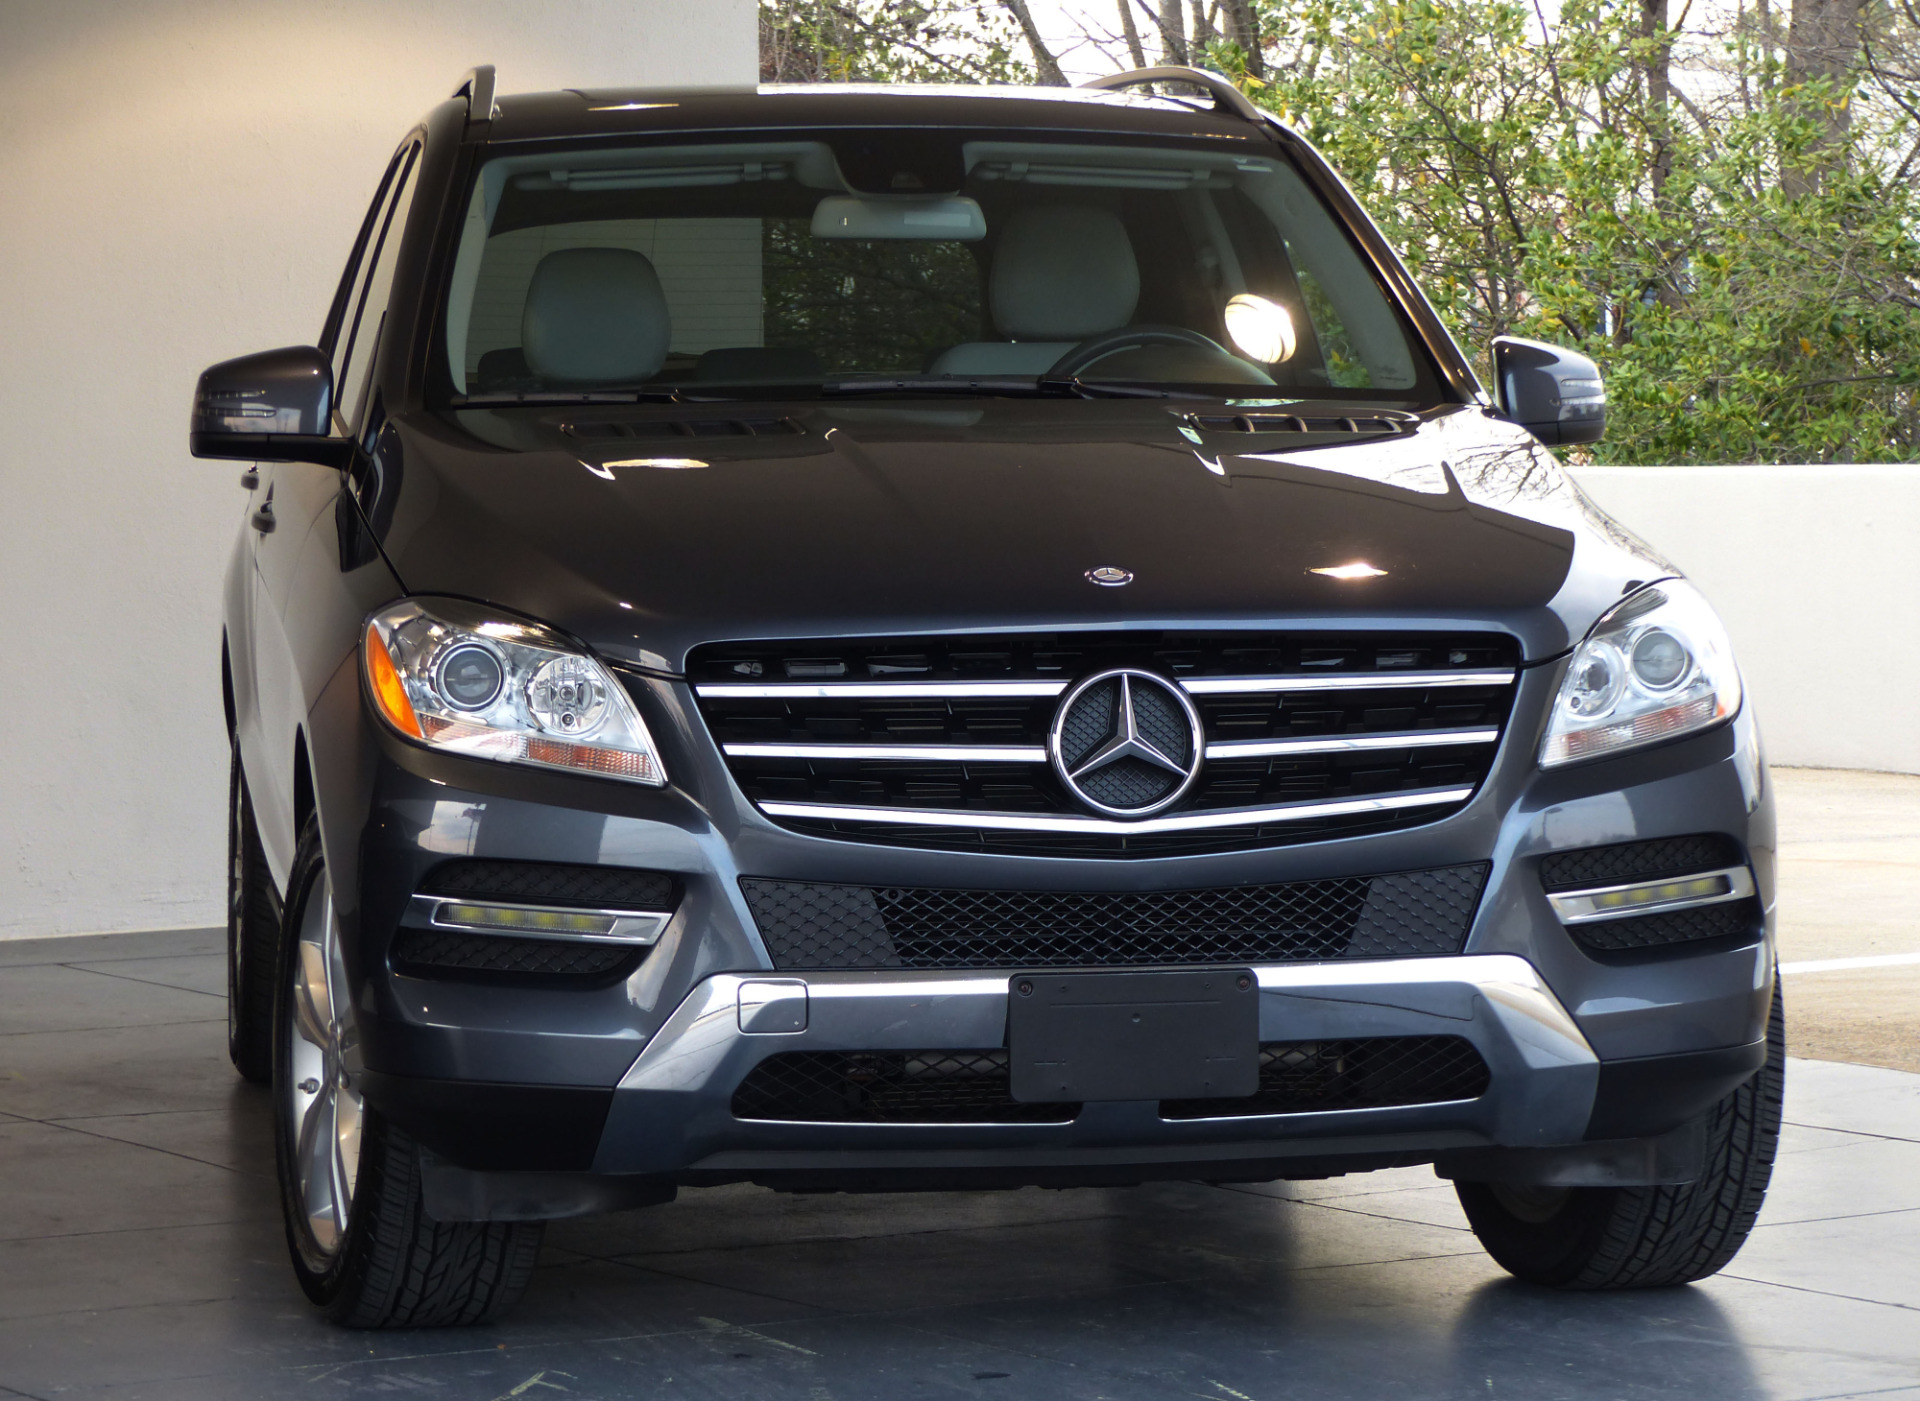 Used 2015 mercedes benz m class ml350 marietta ga for 2015 mercedes benz ml